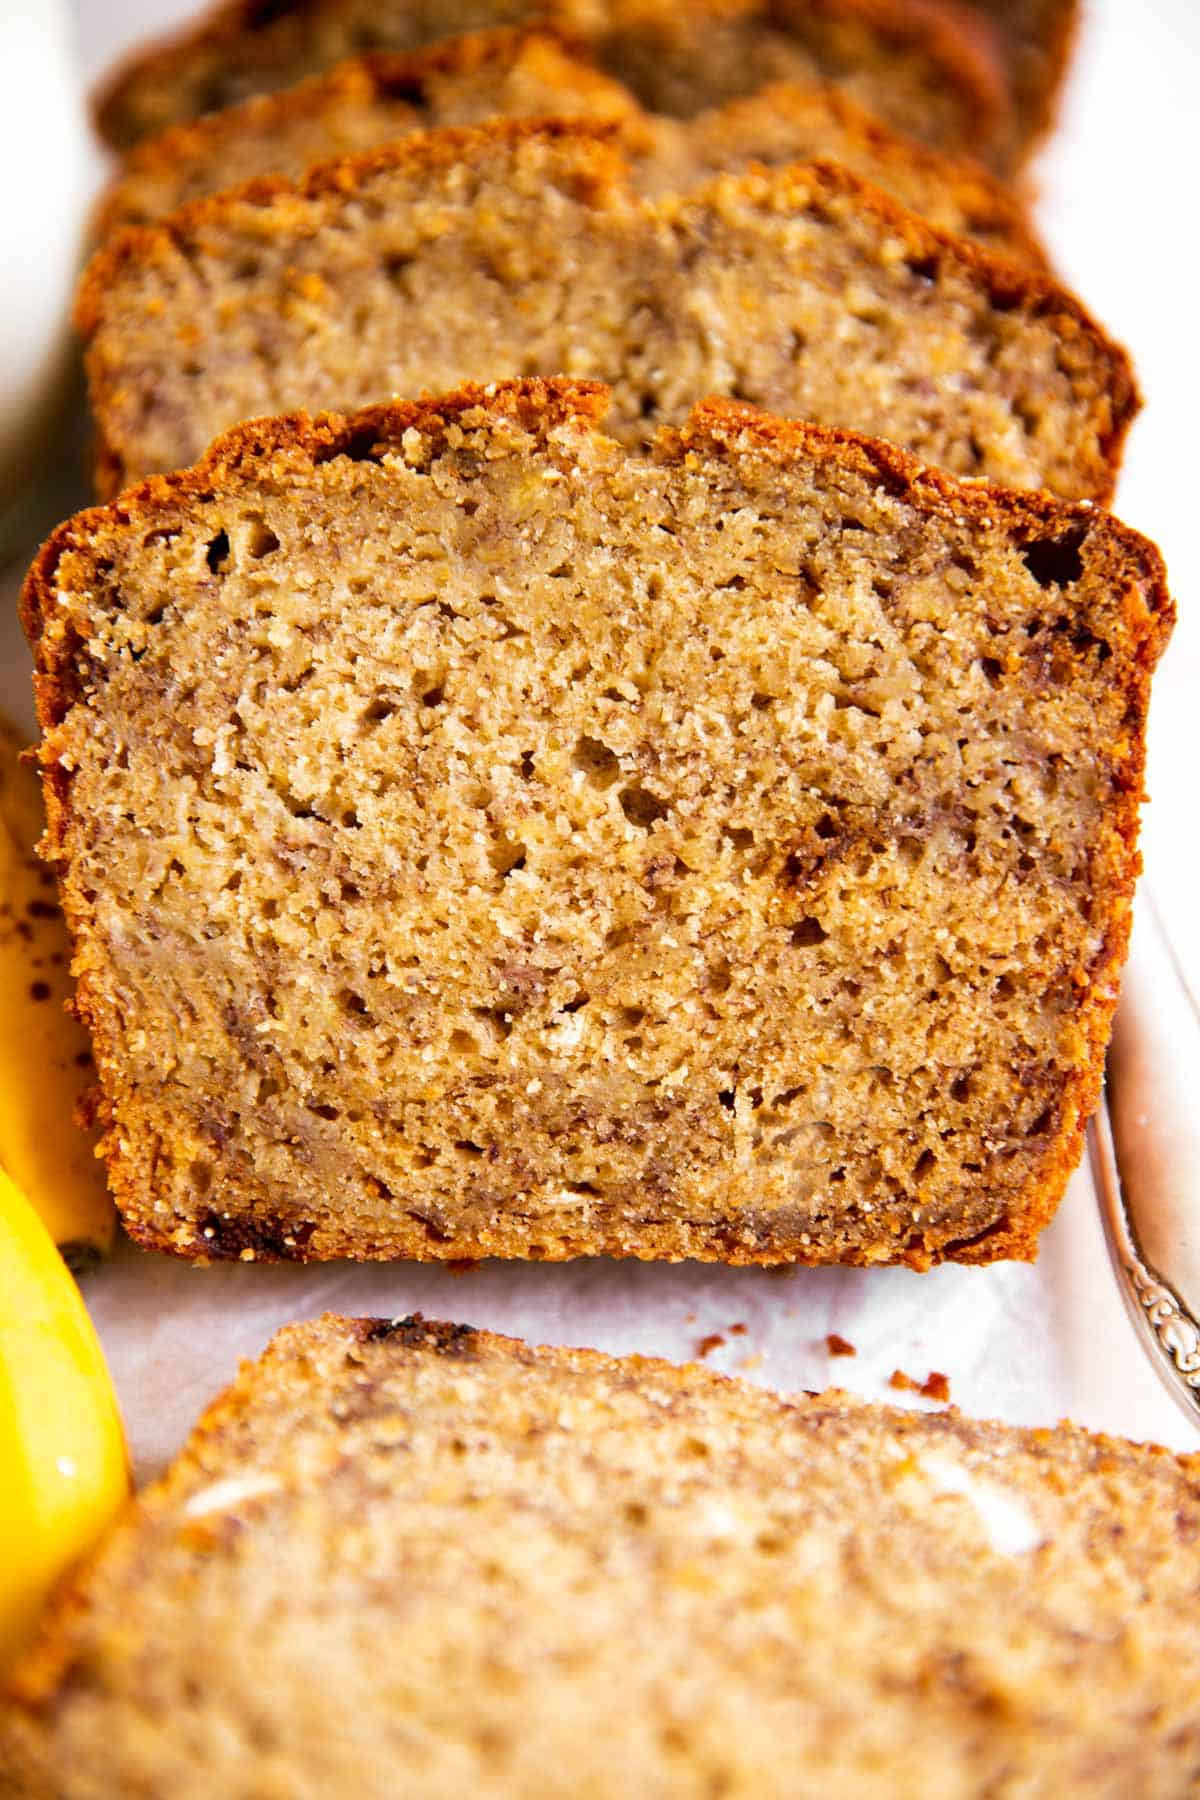 frontal view of sliced banana bread on white parchment paper